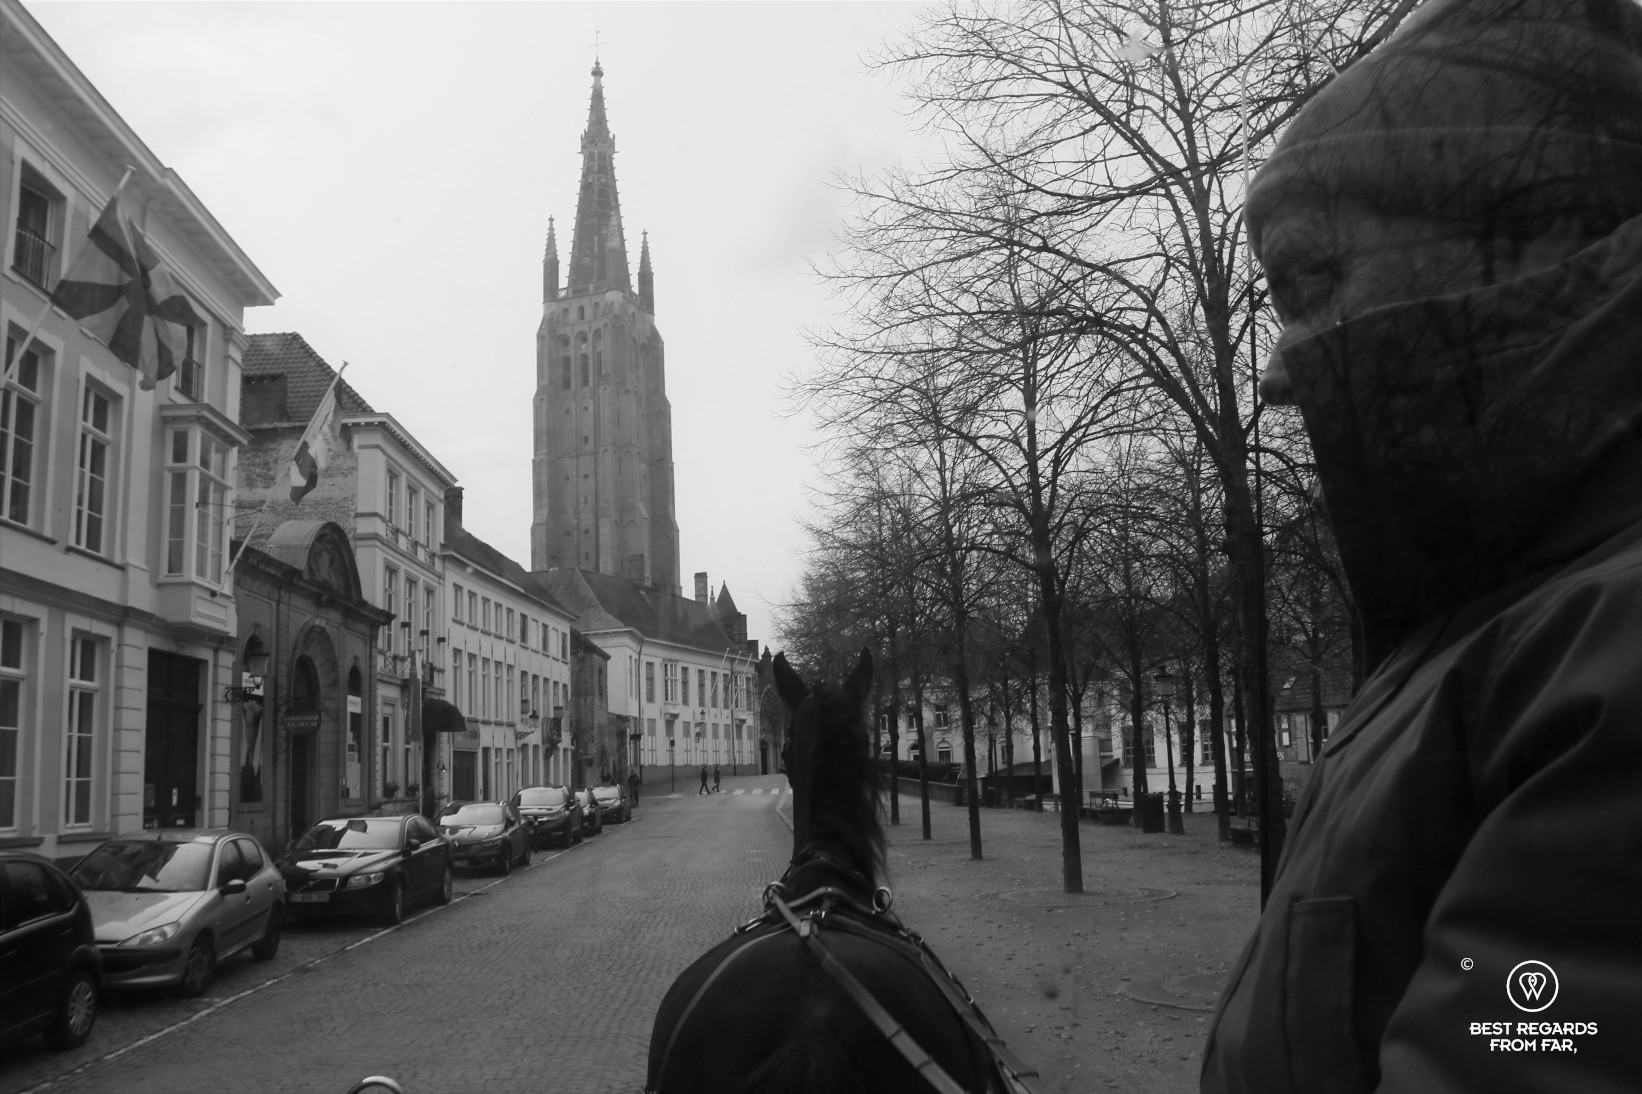 Horse carriage in Bruges.